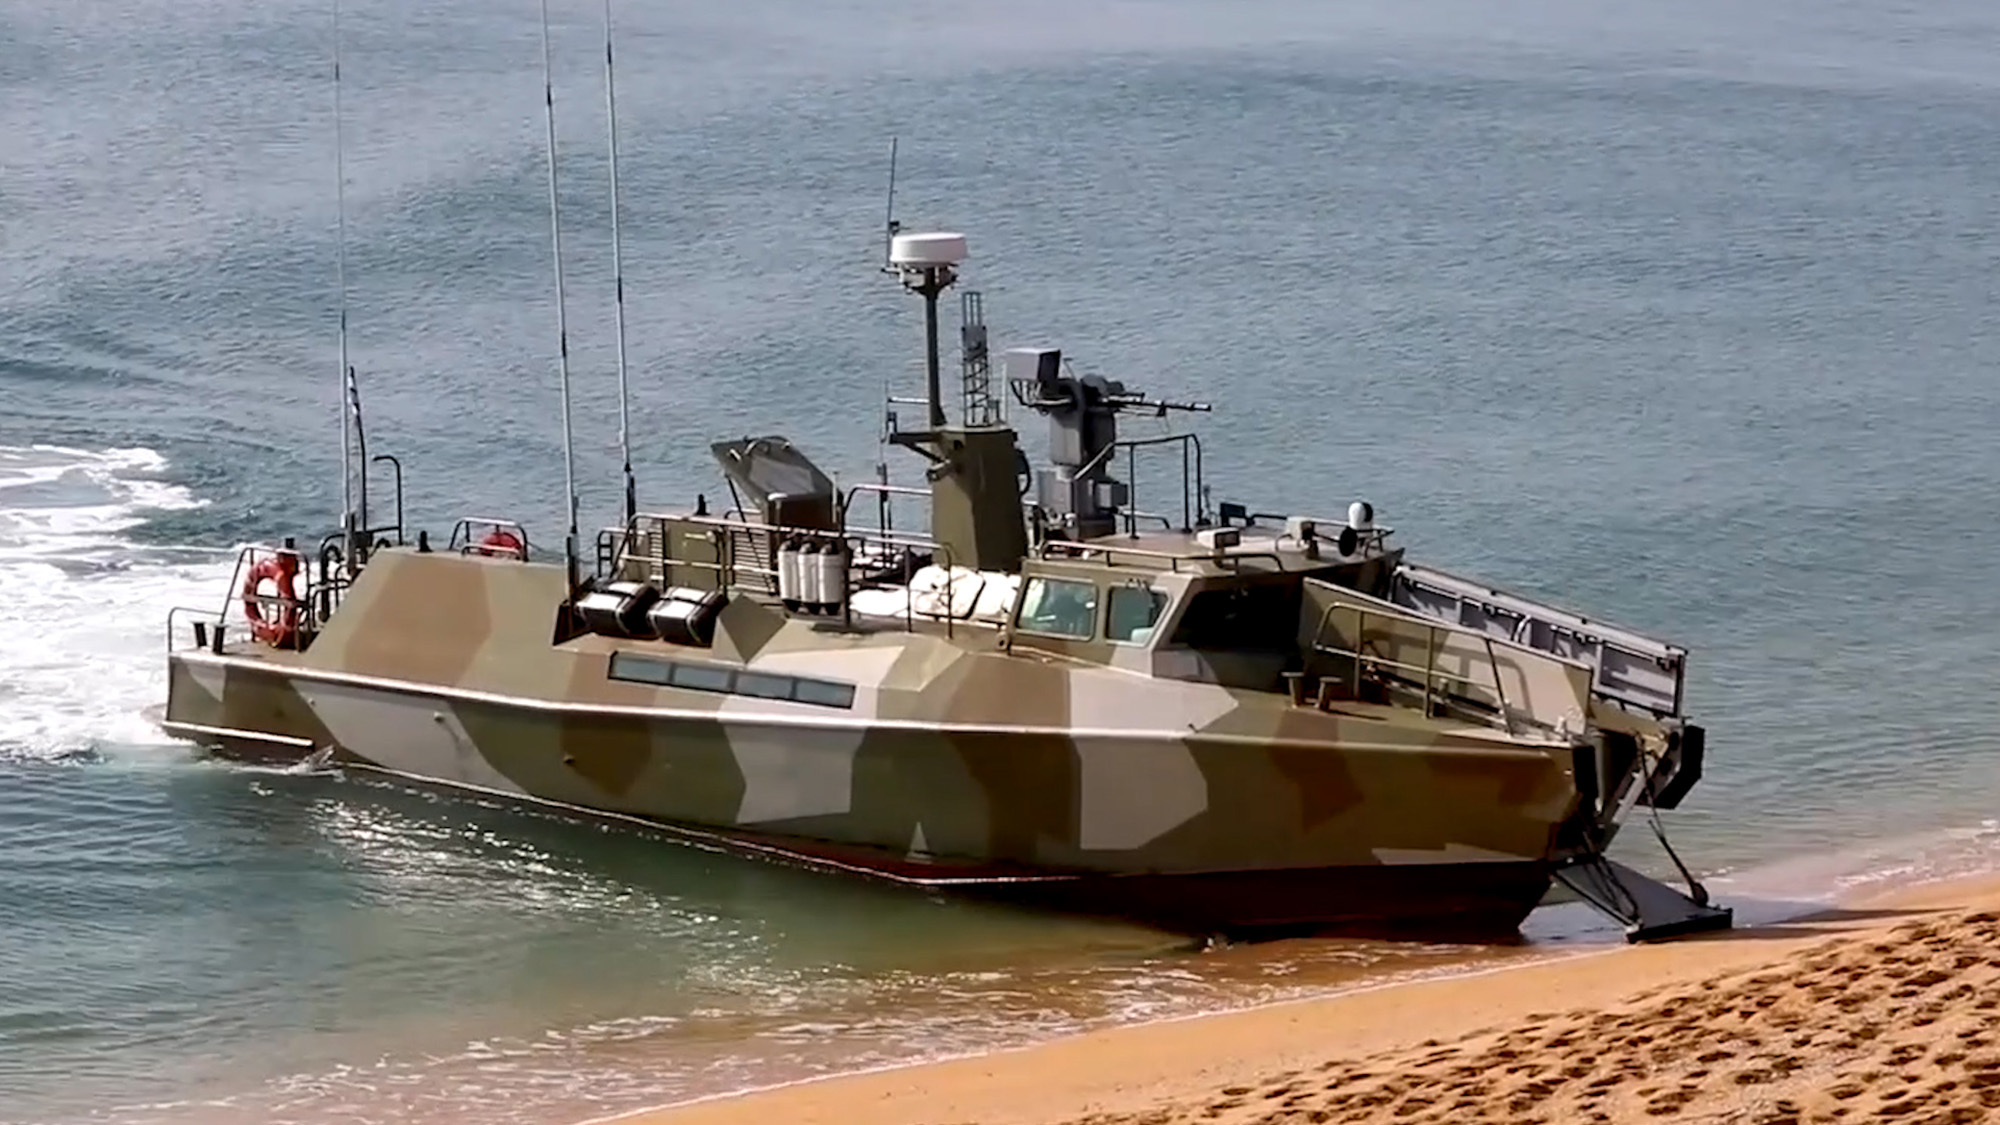 VIDEO: Russian Troops Rehearse D-Day Style Landing In Annexed Crimea